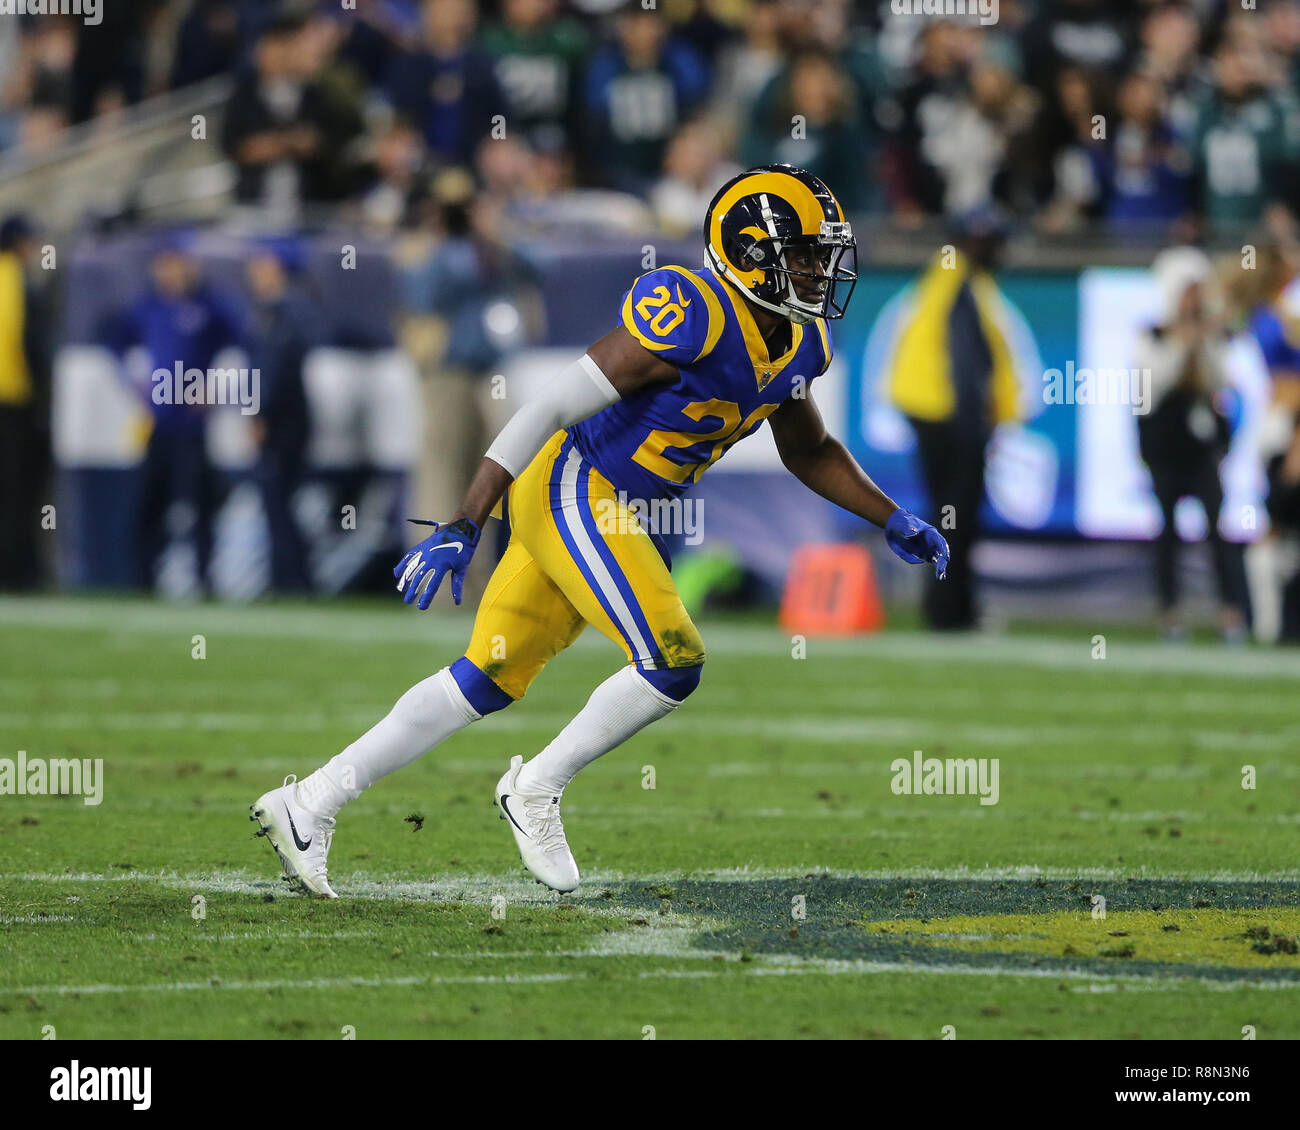 outlet store 9d750 a1330 Los Angeles, CA, USA. 16th Dec, 2018. Los Angeles Rams free ...